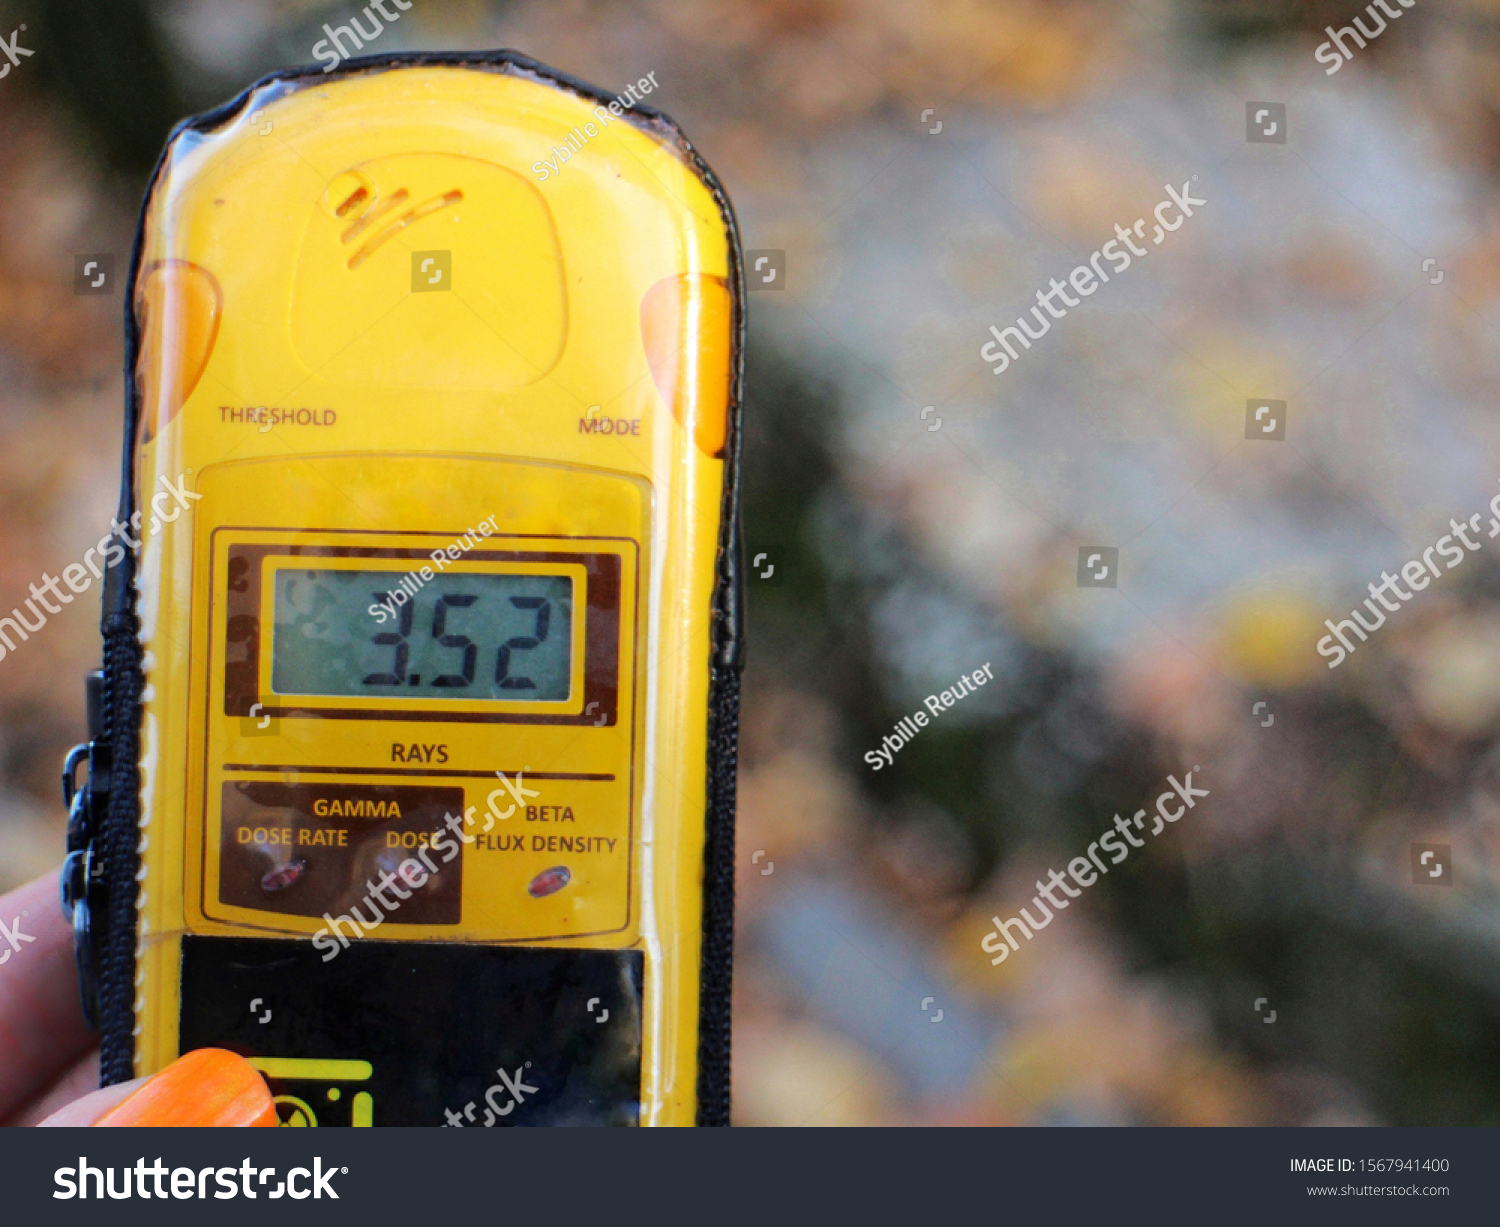 stock-photo-a-dosimeter-is-held-showing-